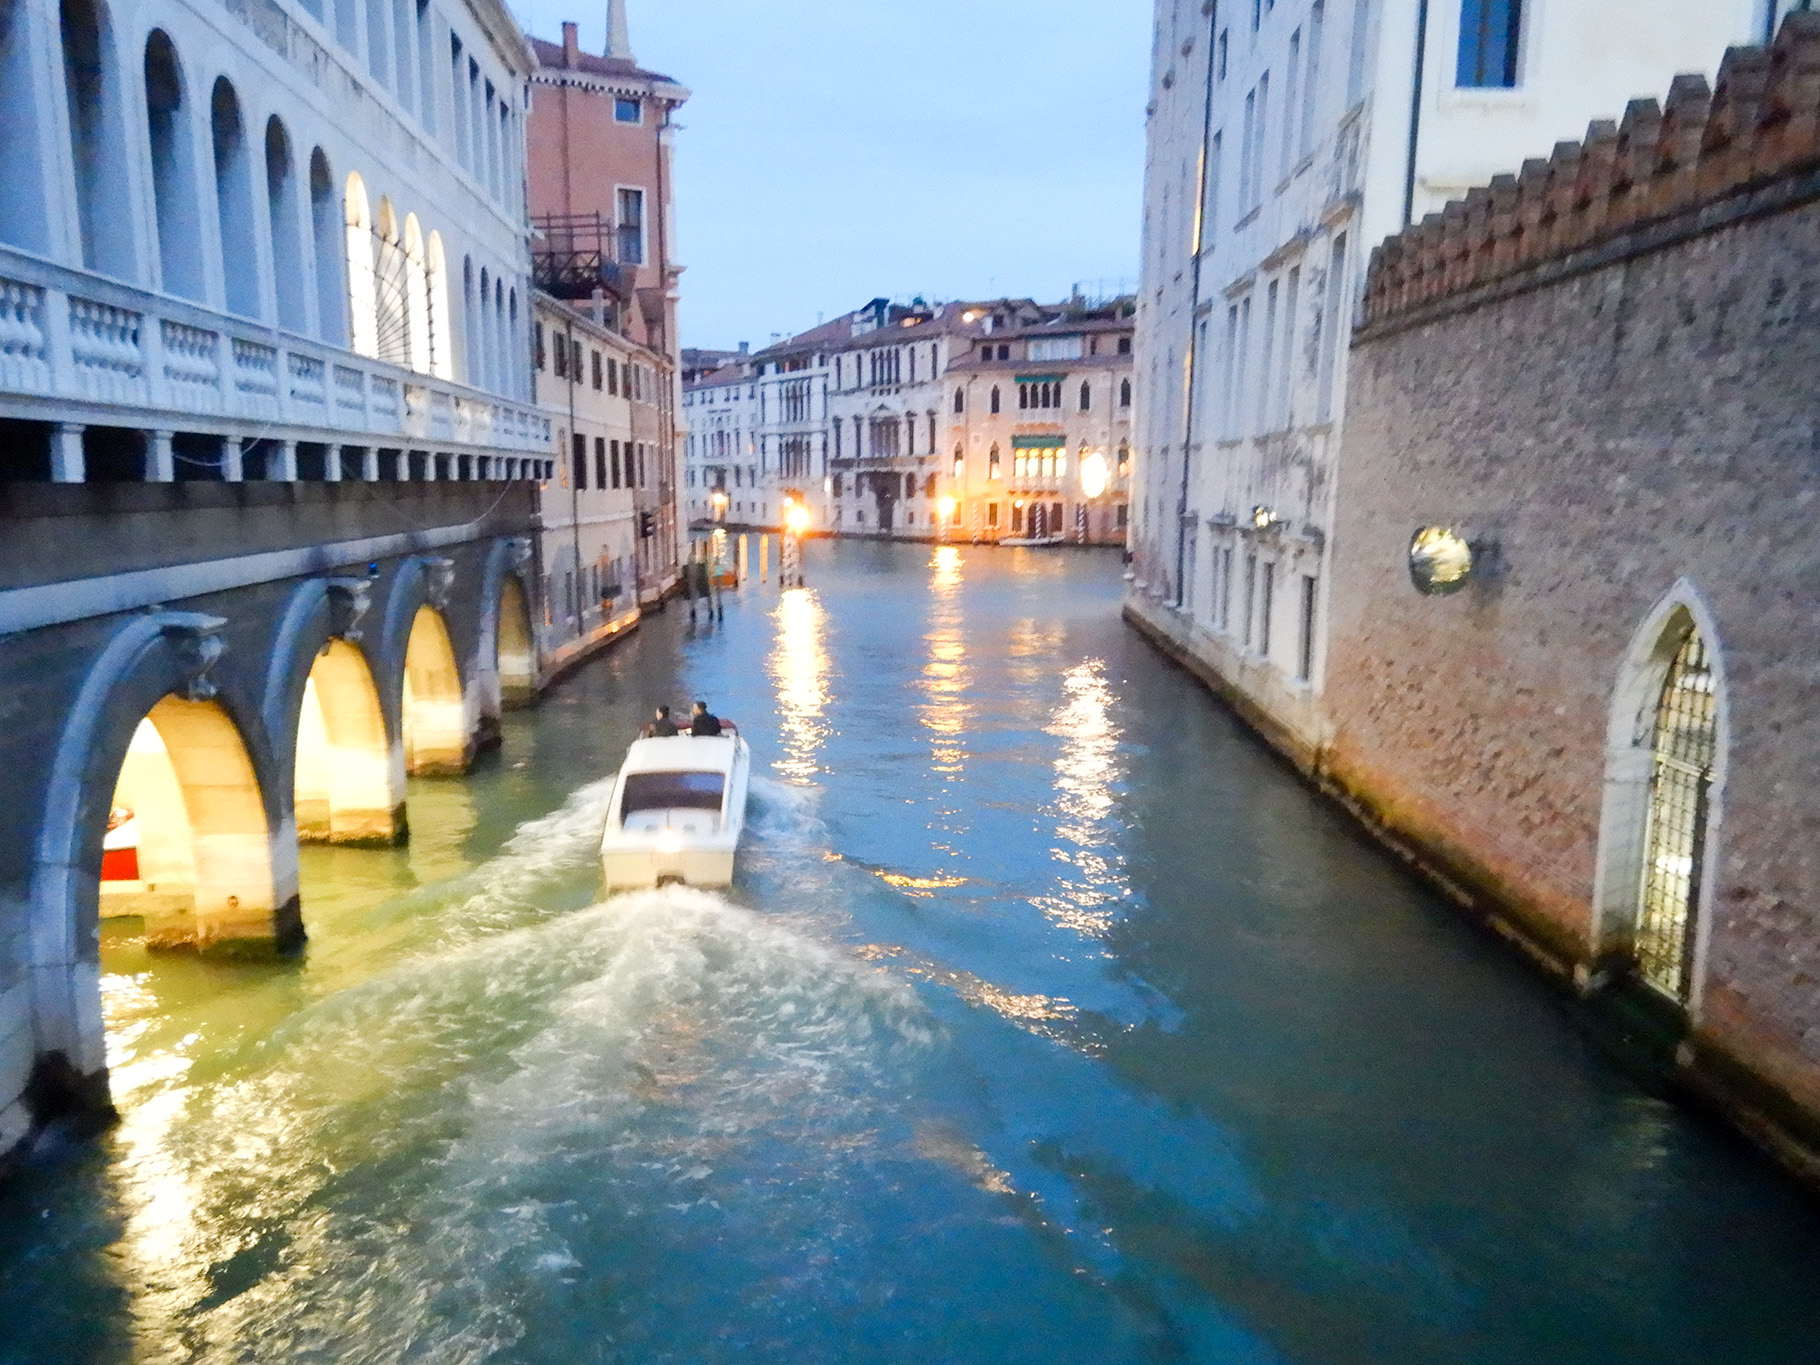 20171001 - On Route to Venice - 066.jpg